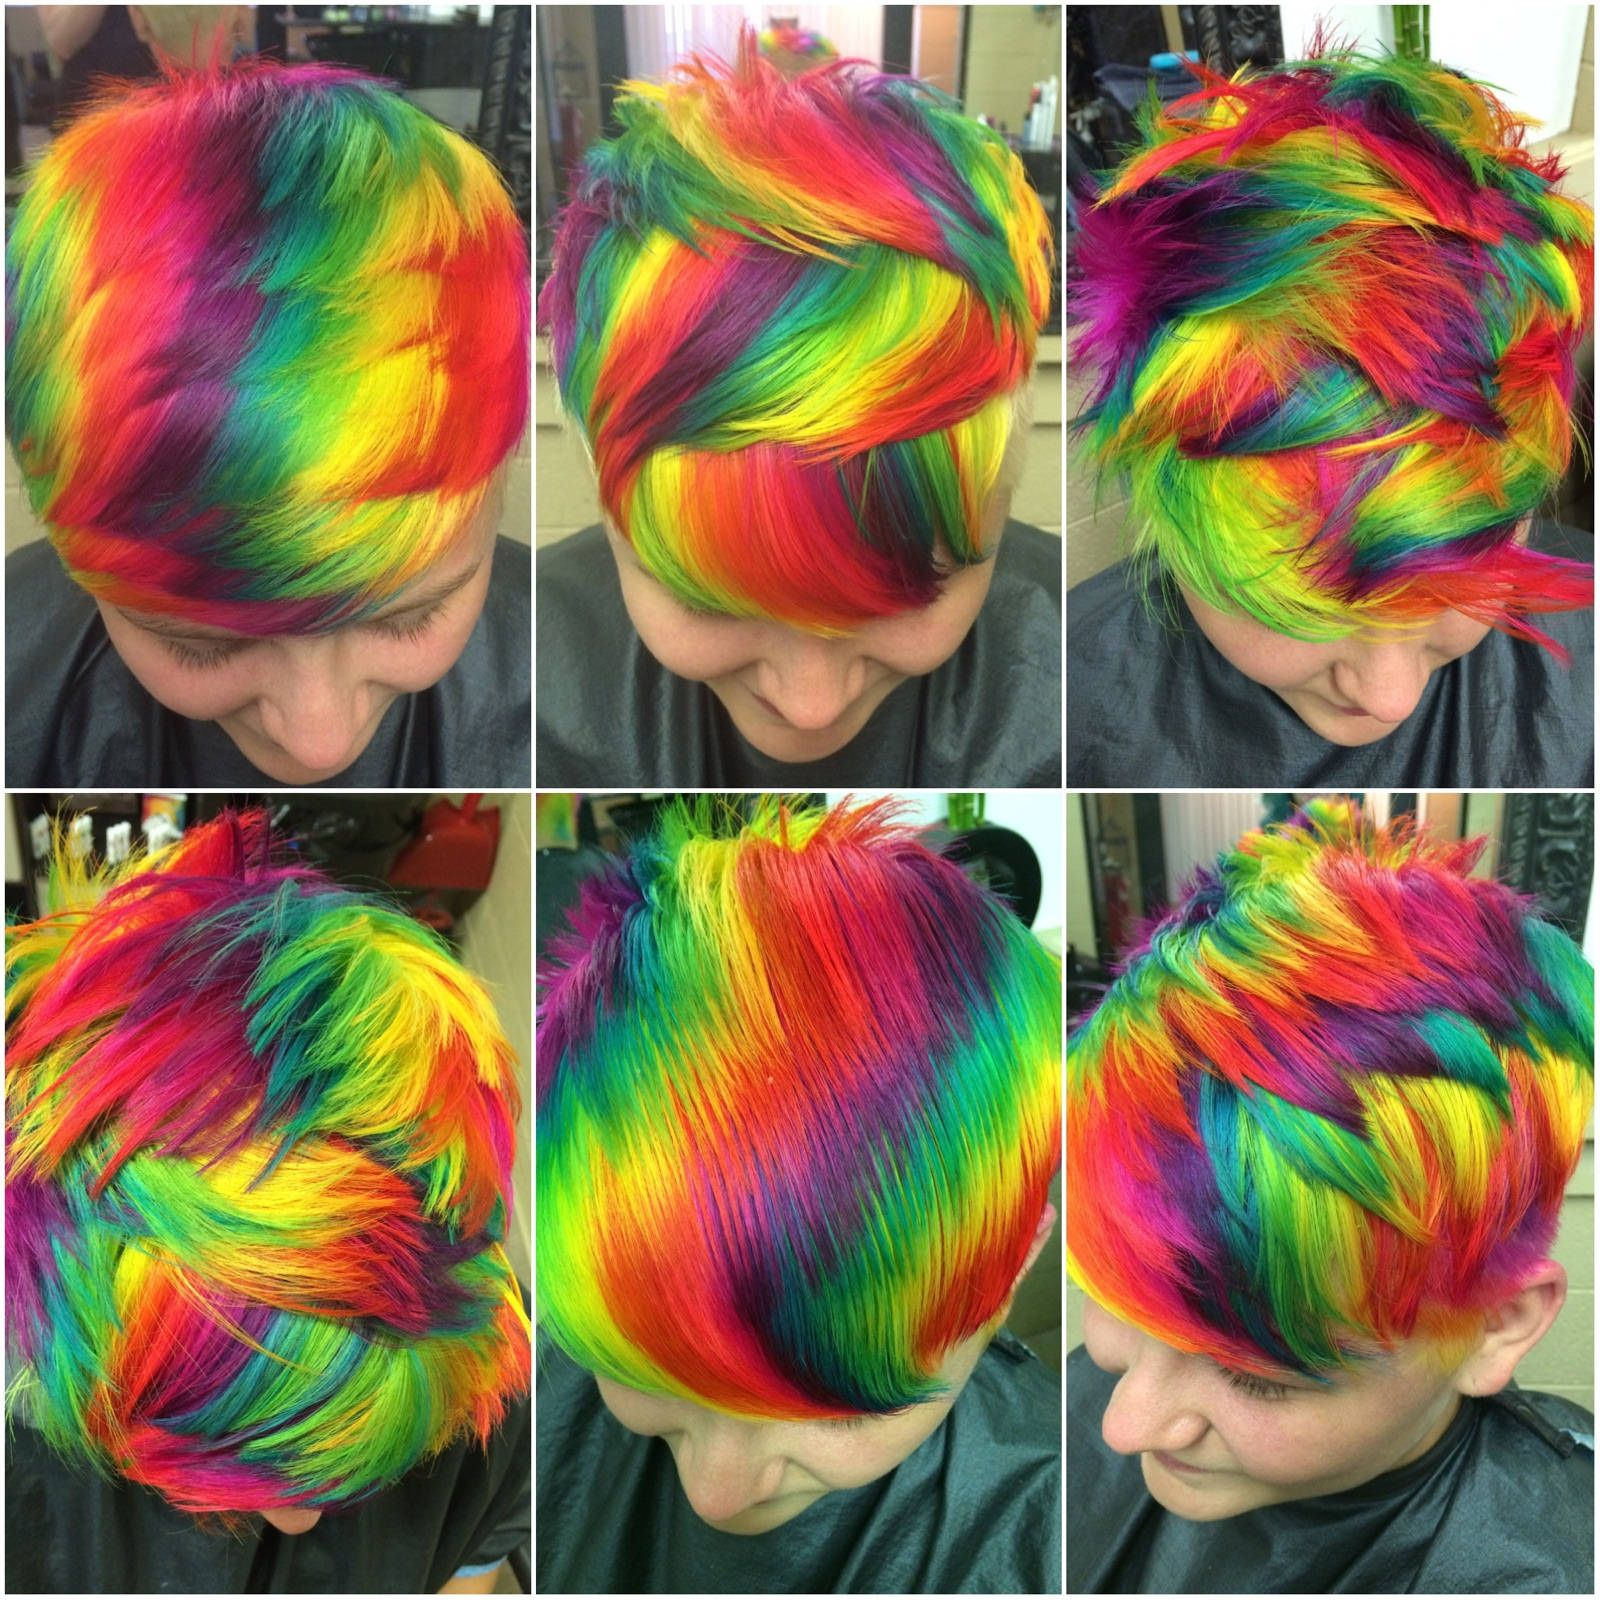 Www Outrageousrainbows Com With Images Short Rainbow Hair